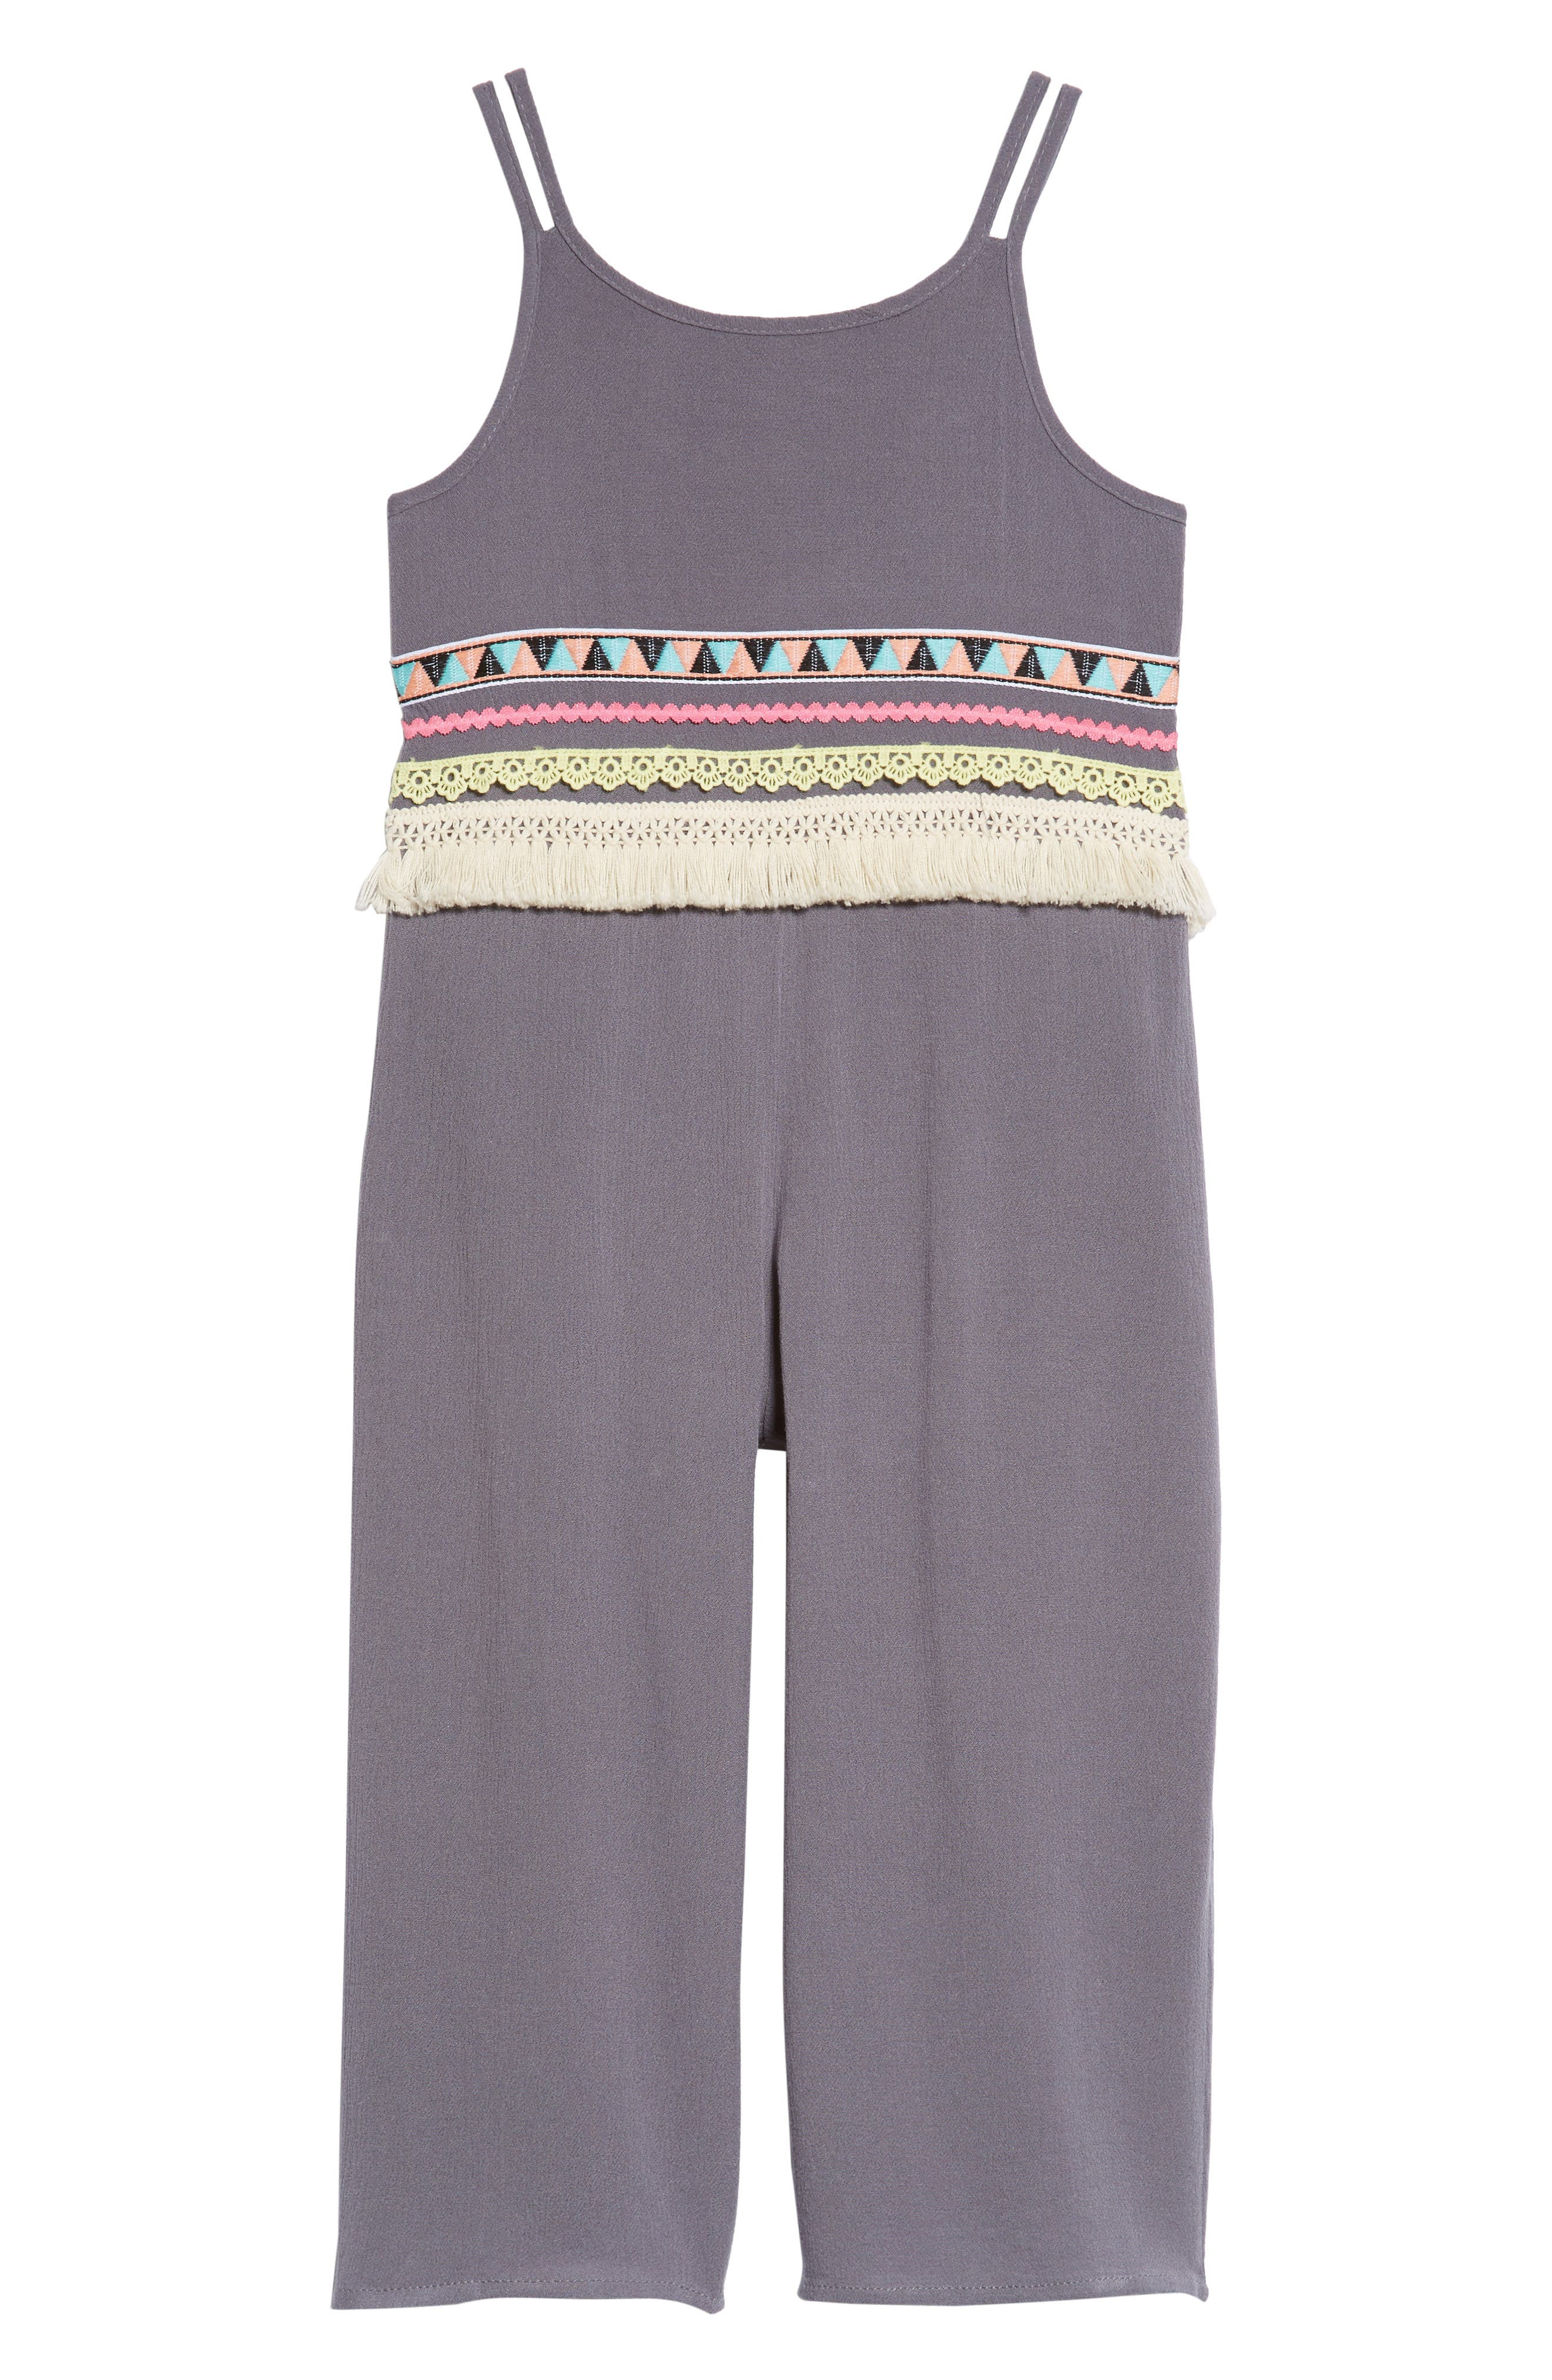 Main Image - Truly Me Trim Jumpsuit (Toddler Girls & Little Girls)